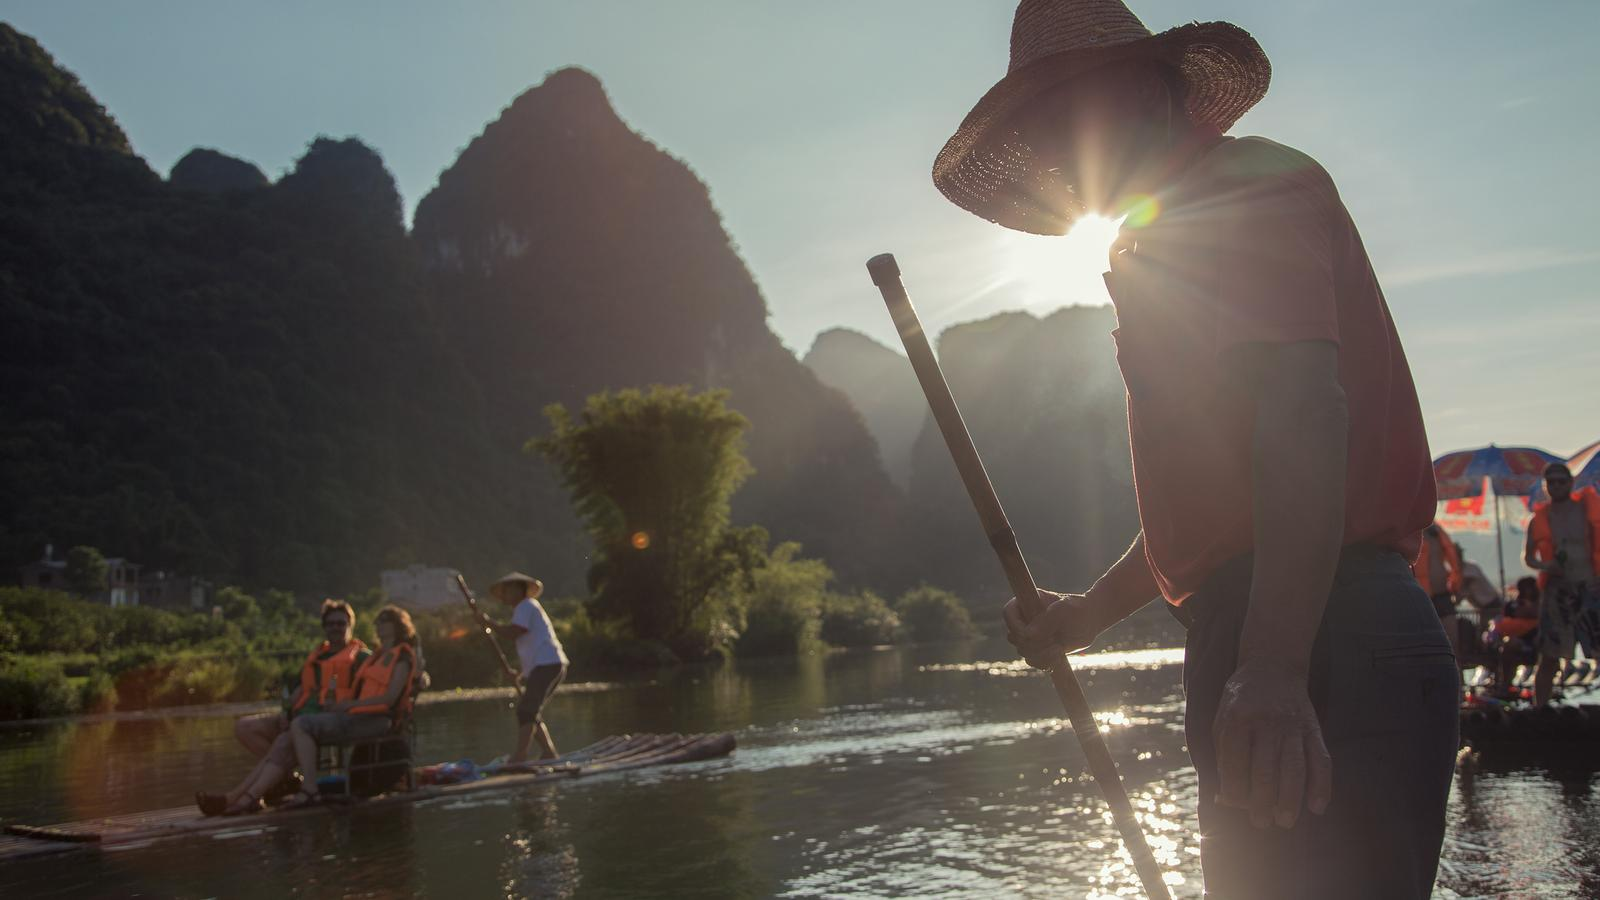 Rafting down the Yangshuo River in China